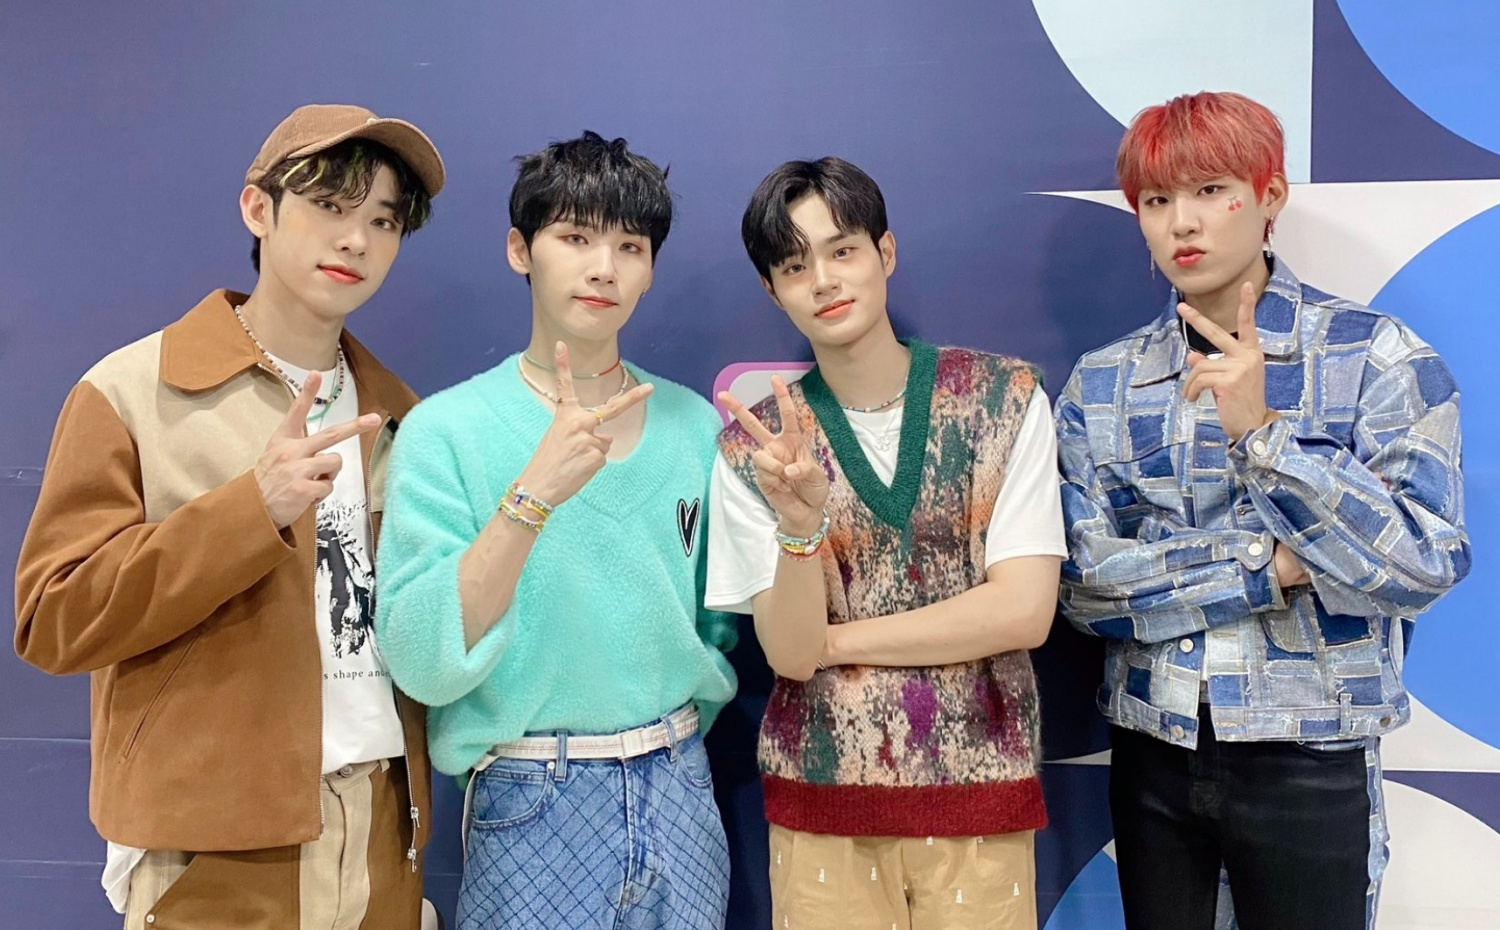 'MO' COMPLETE' Becomes AB6IX's Best Selling Album on Hanteo after Breaking the Group's First-Week Sales Record